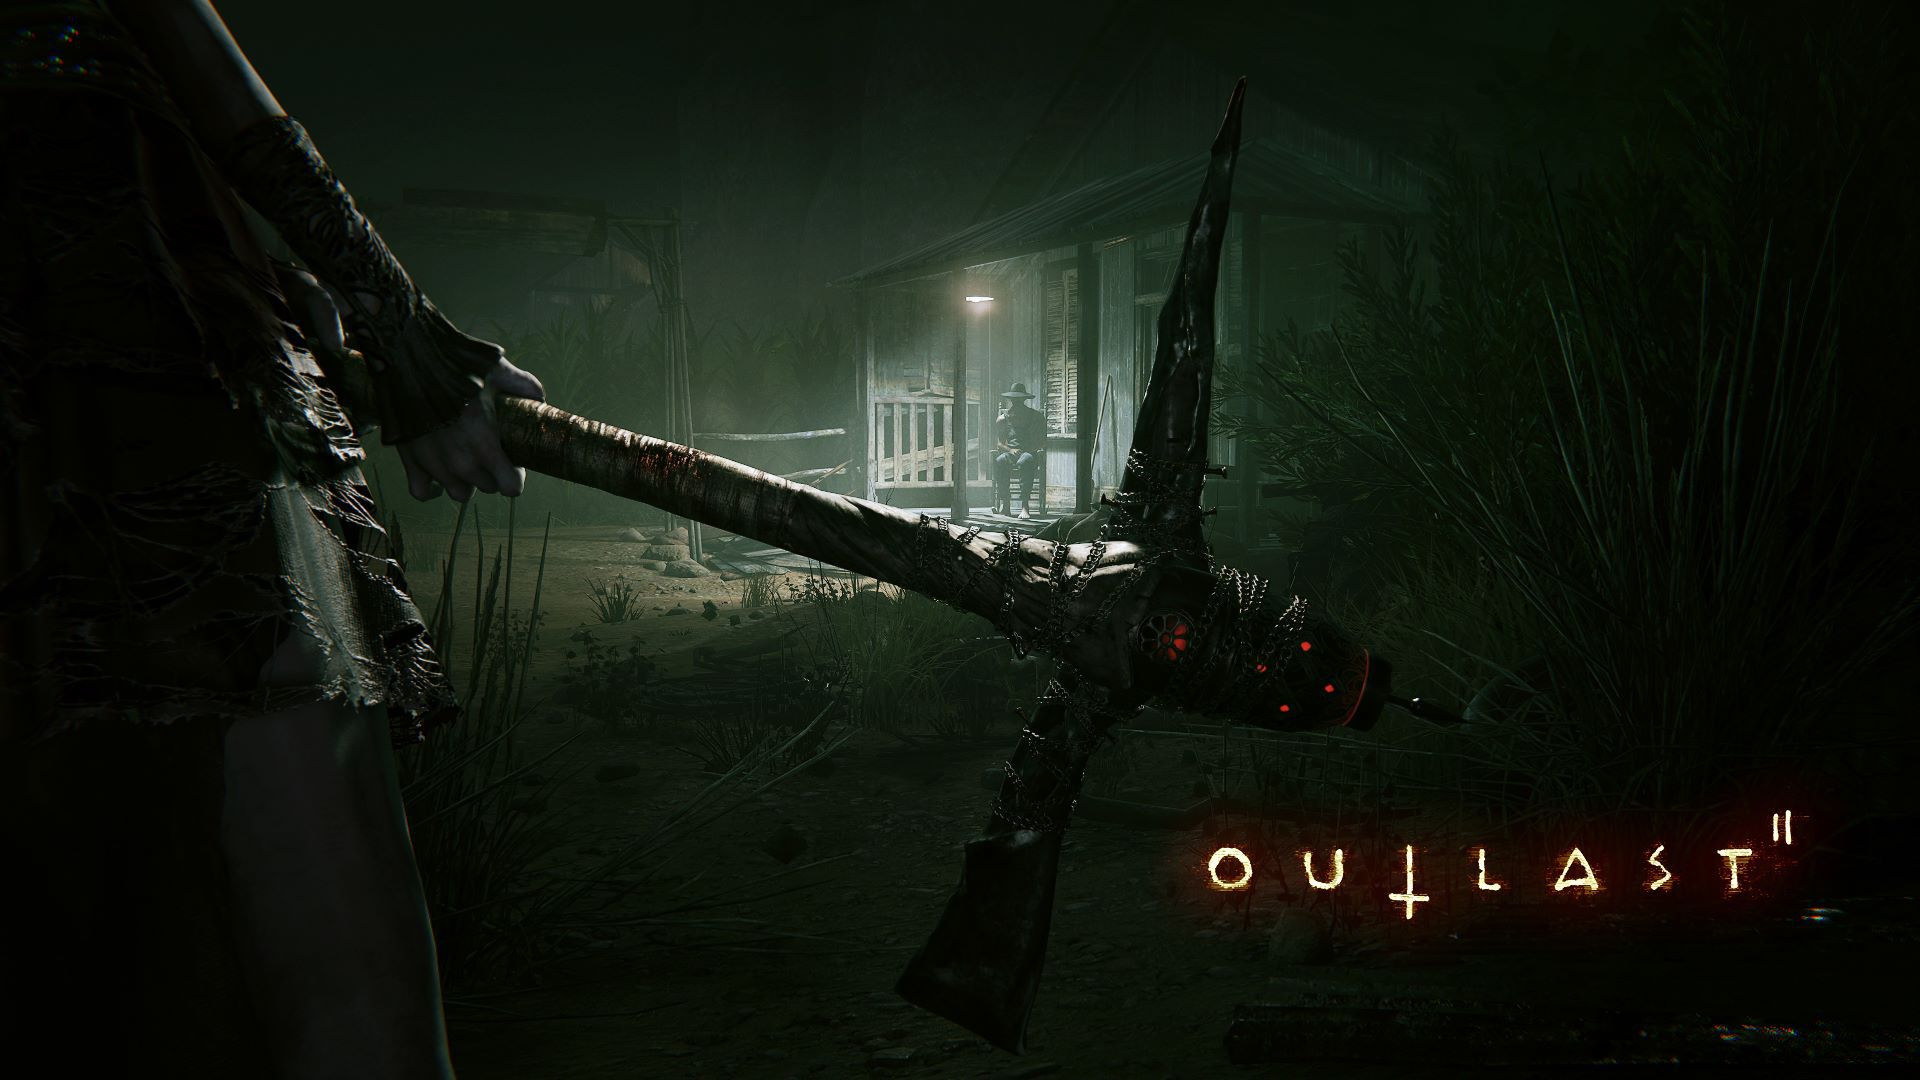 Outlast 2 HD Wallpapers and Background Images   stmednet 1920x1080